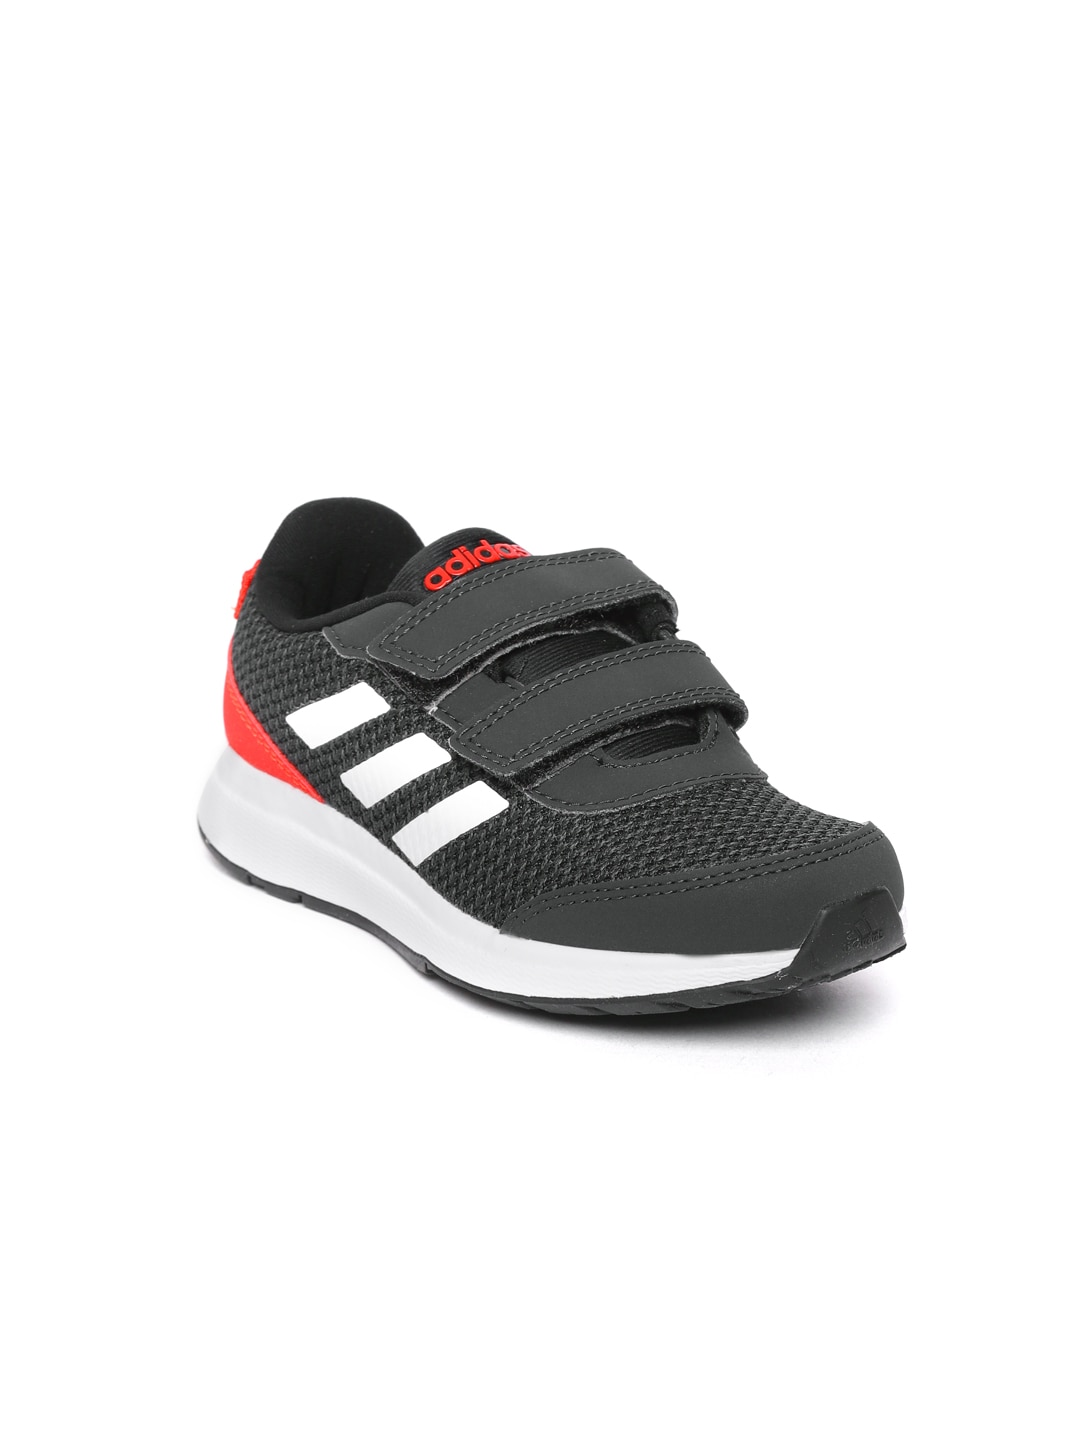 f318e5e0998 Adidas Running Shoes - Buy Adidas Running Shoes Online